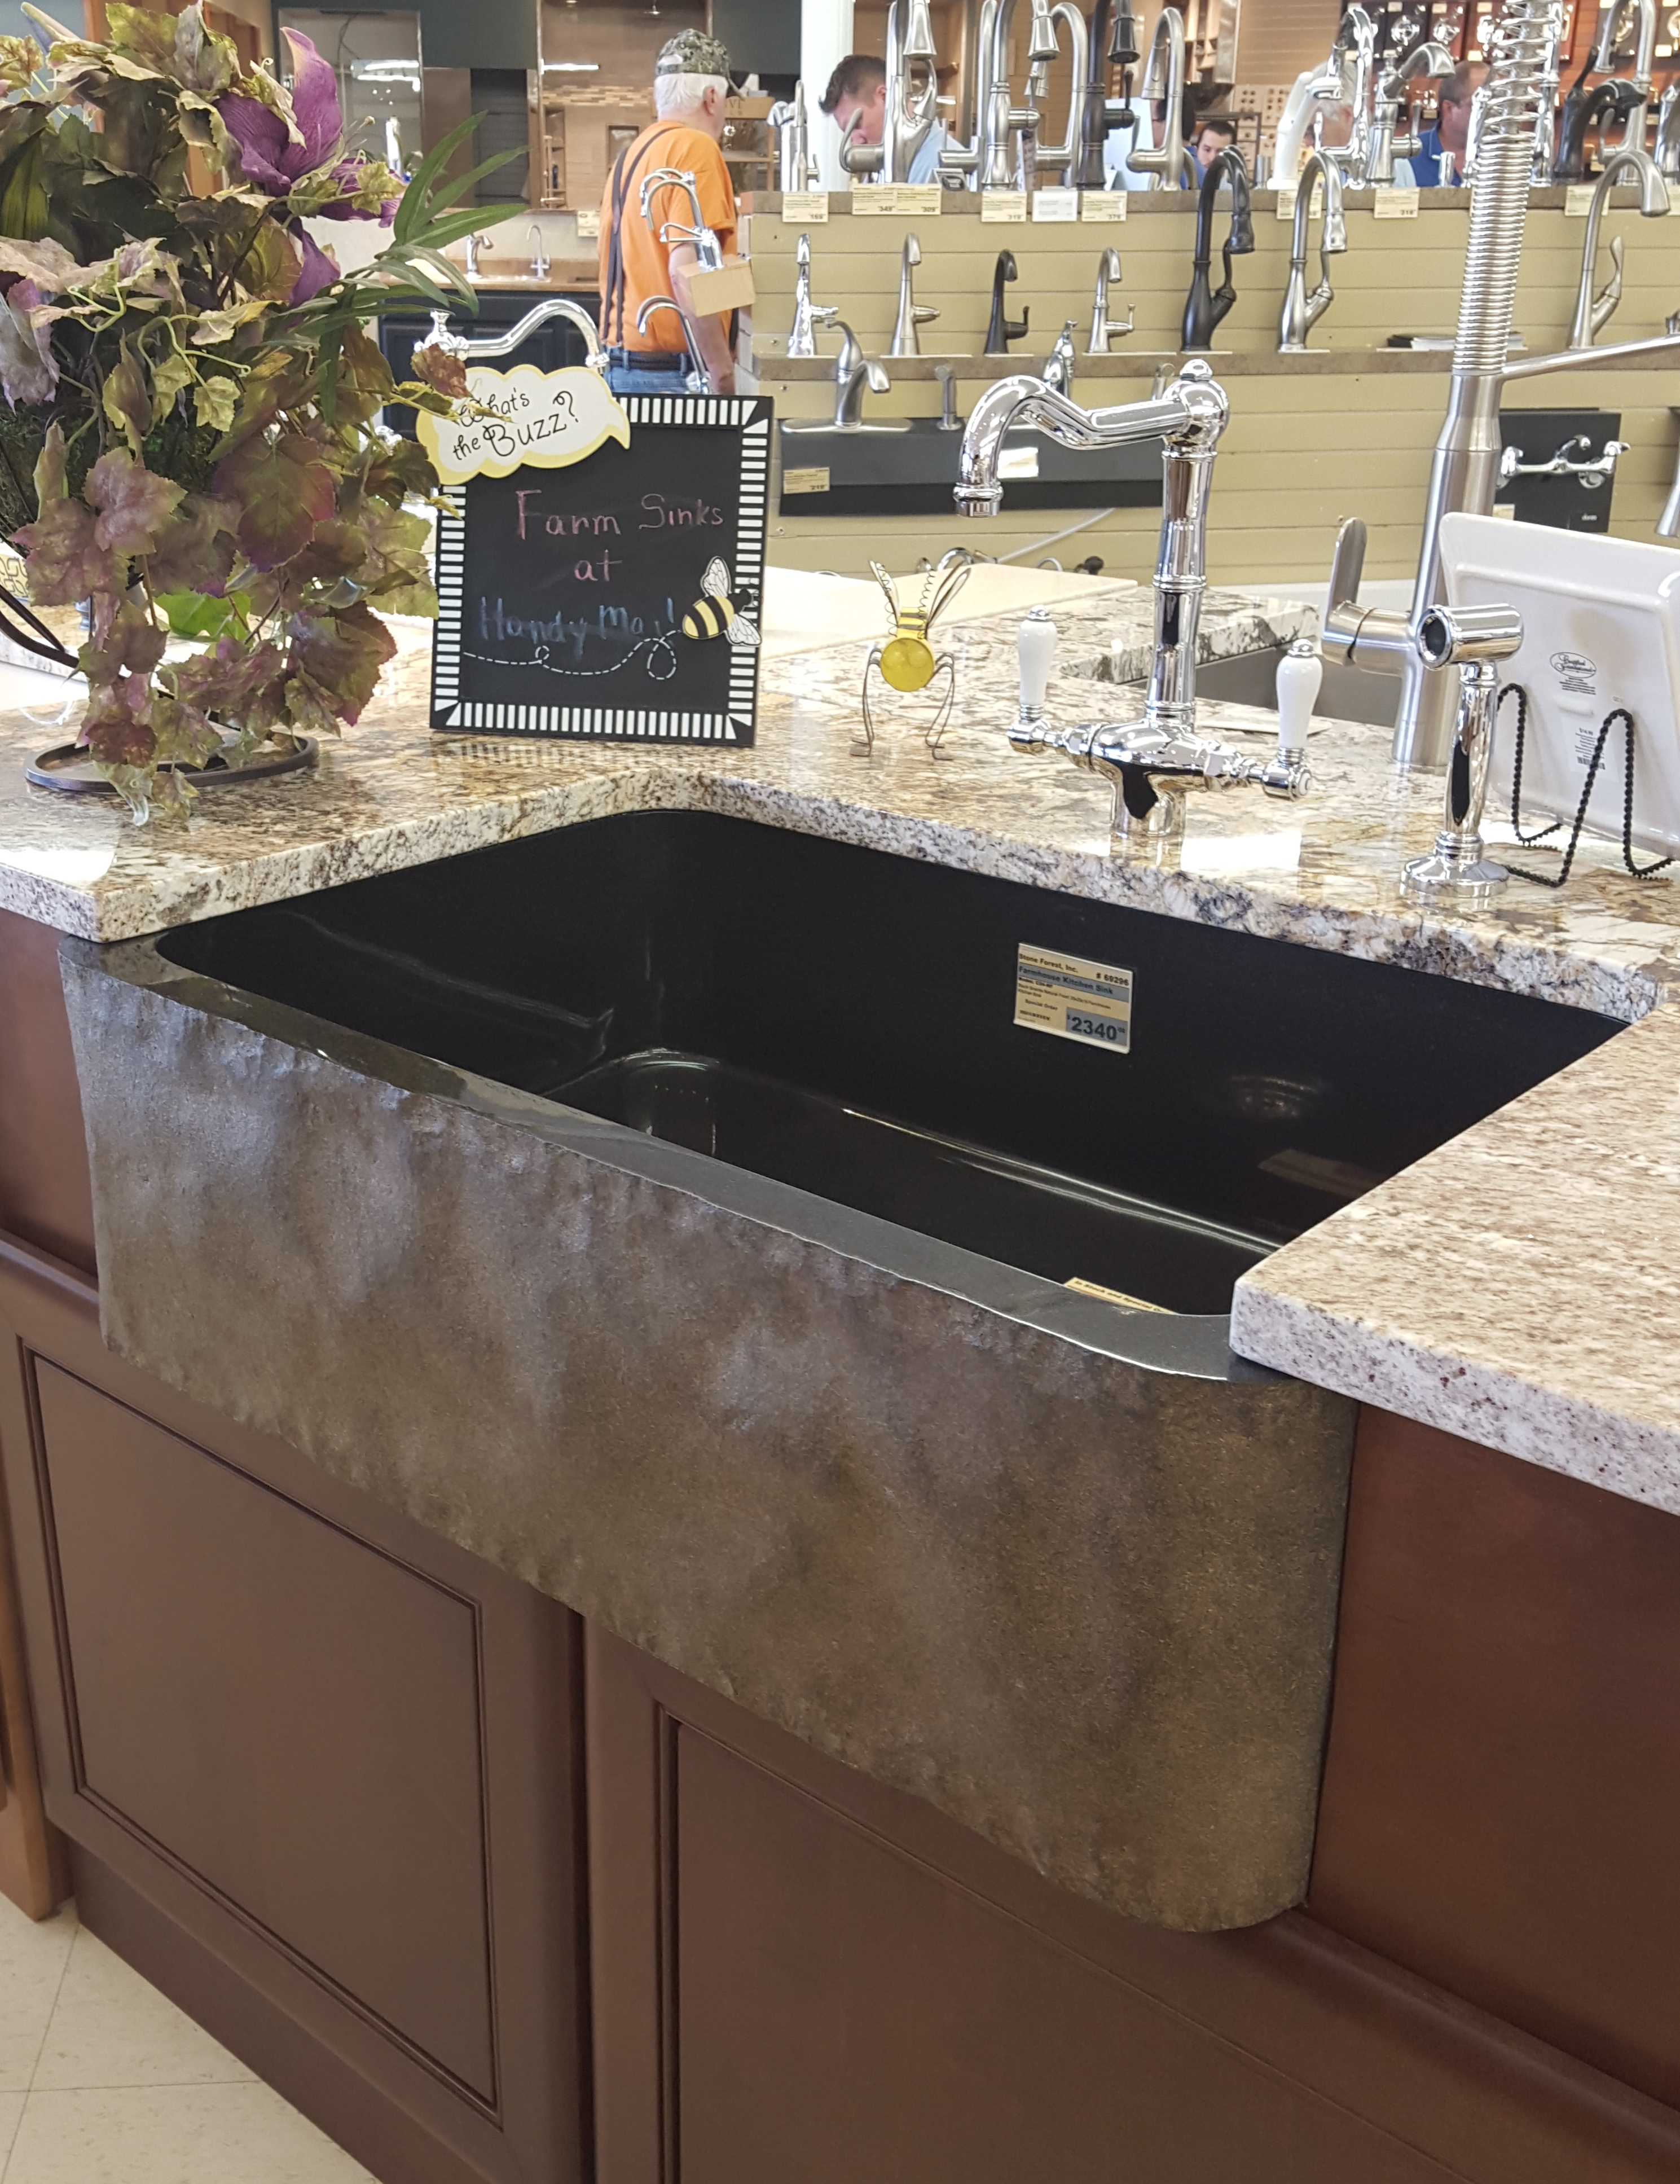 How to shop for your kitchen sink